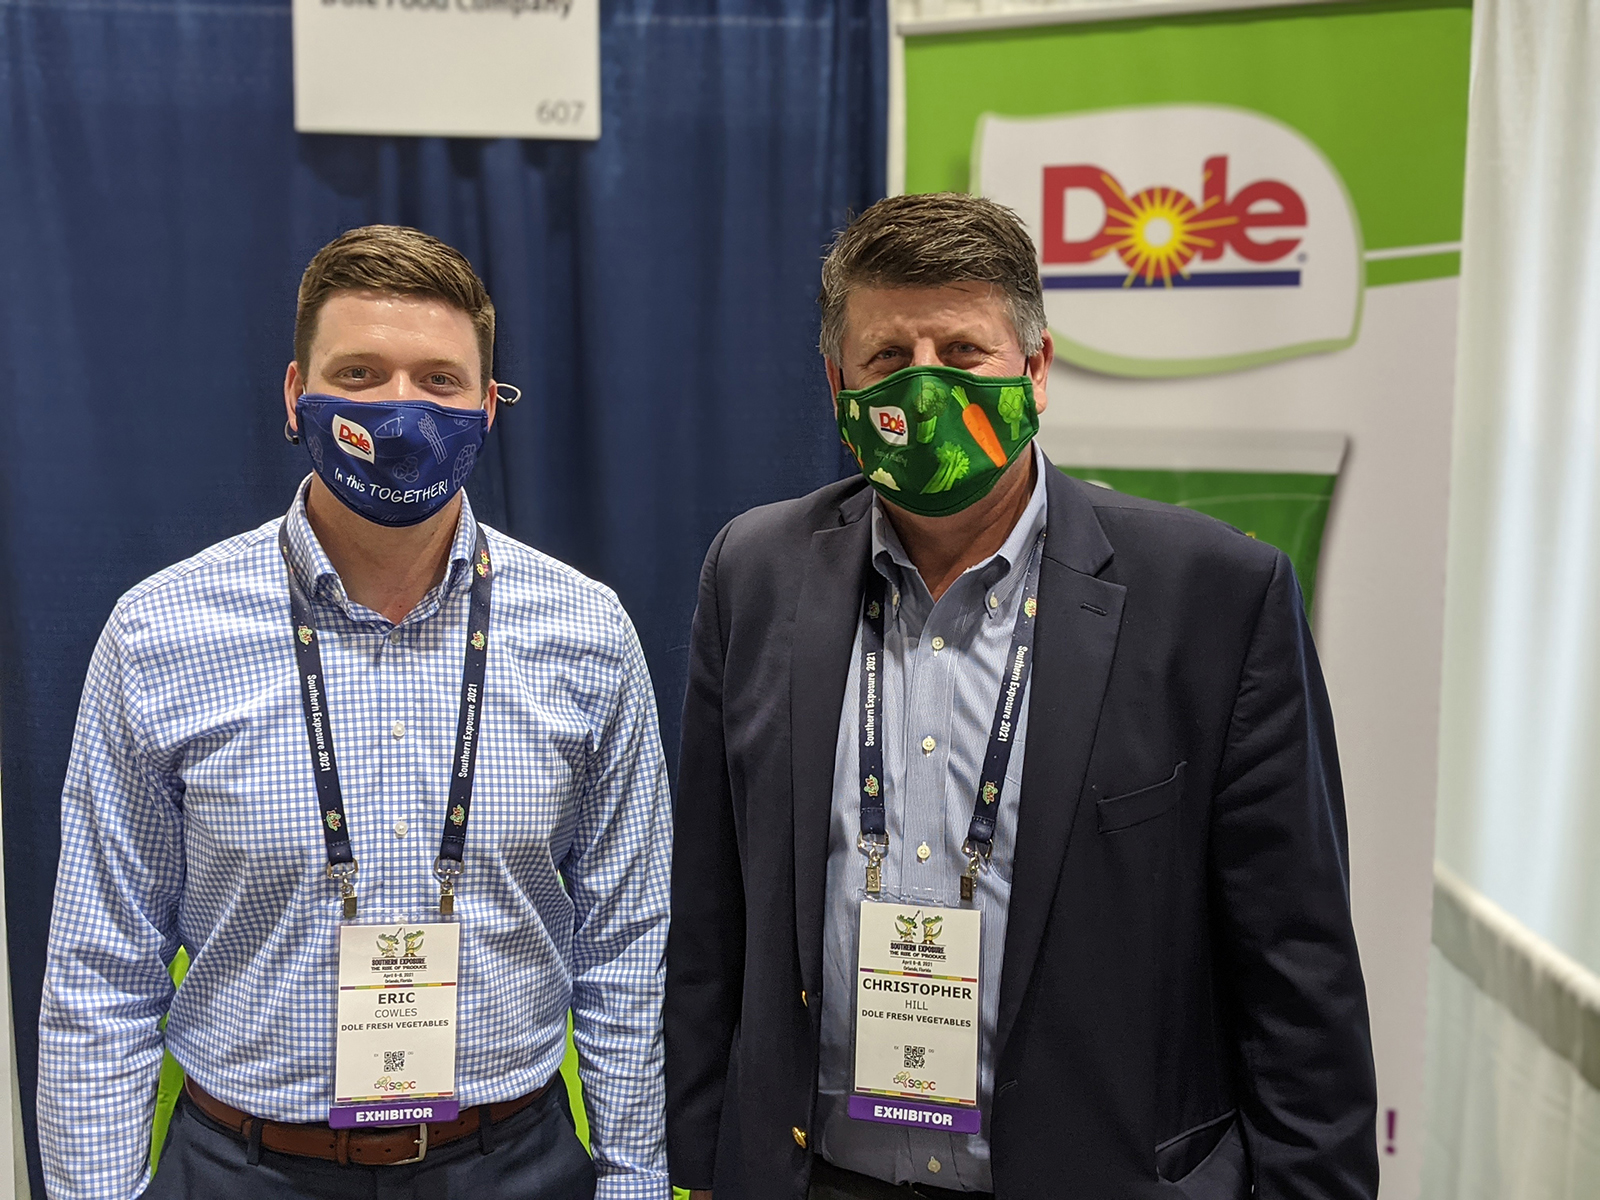 Eric Cowles and Christopher Hill of Dole Fresh Vegetables.